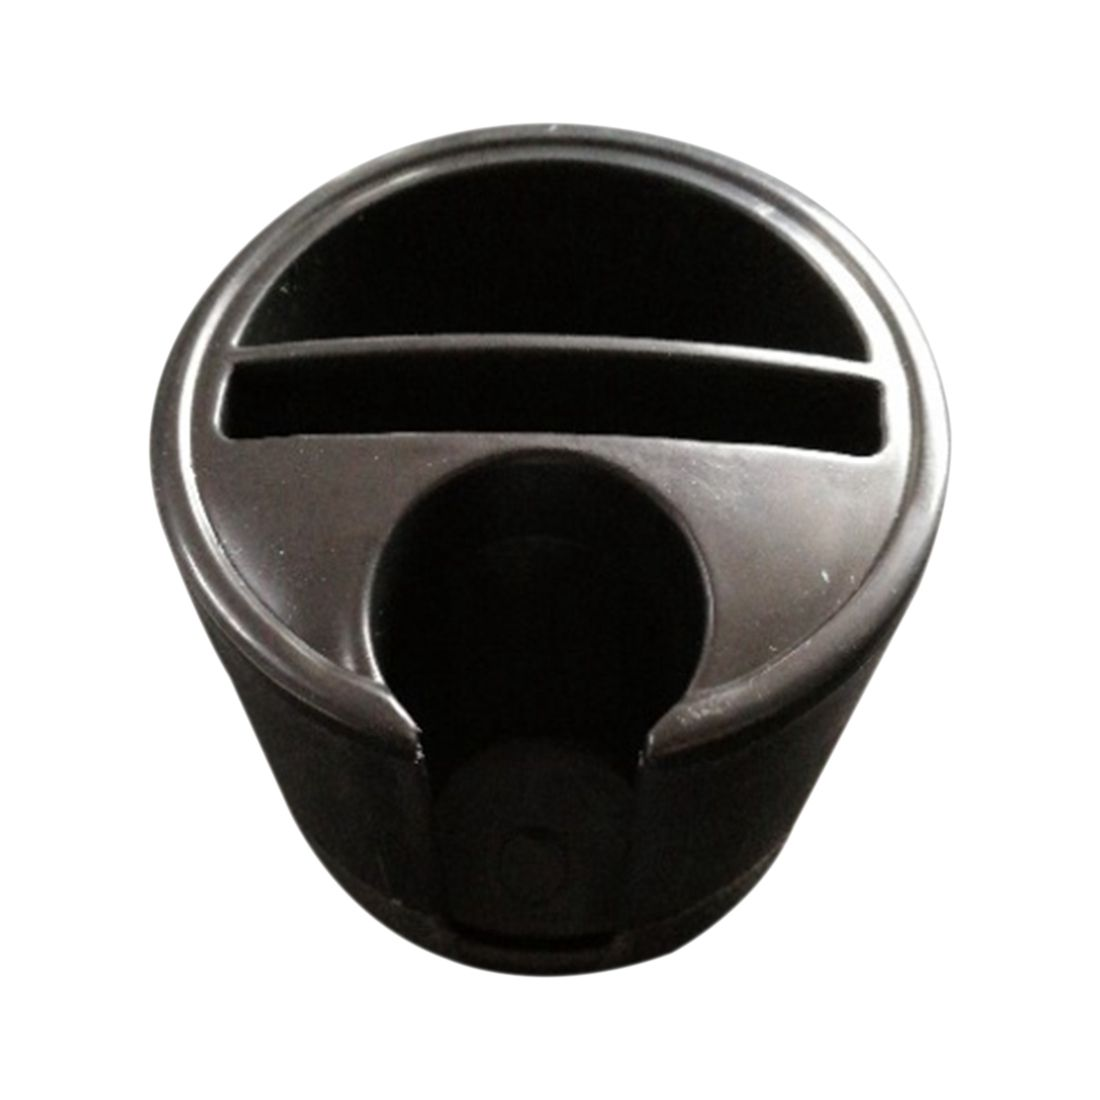 AUTO -New black universal vehicle mounted cup-shaped multifunctional storage case, change box ,can be inserted into card key b